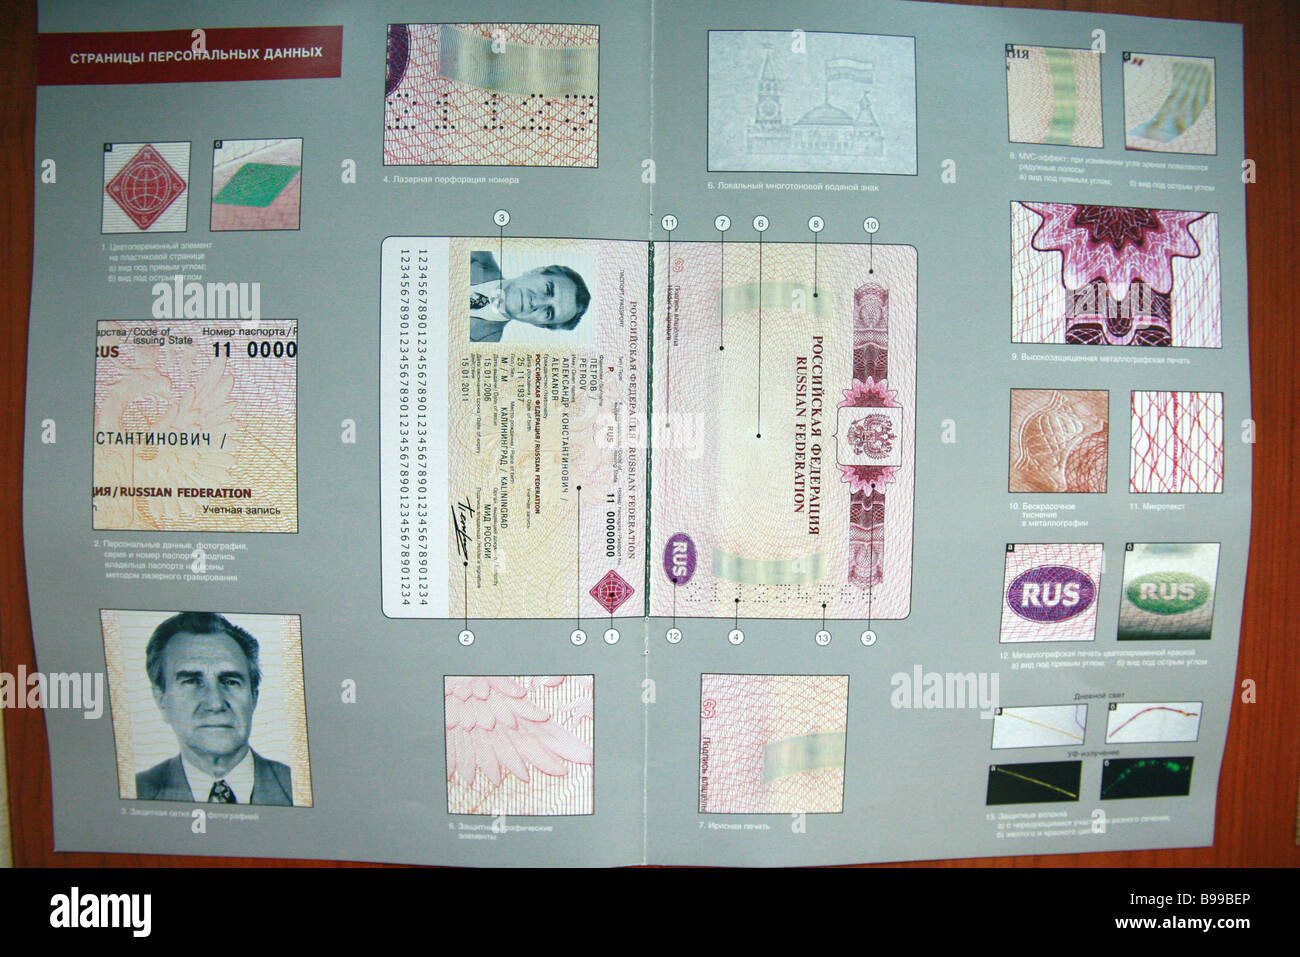 The personal information pages of the new generation foreign passport - Stock Image